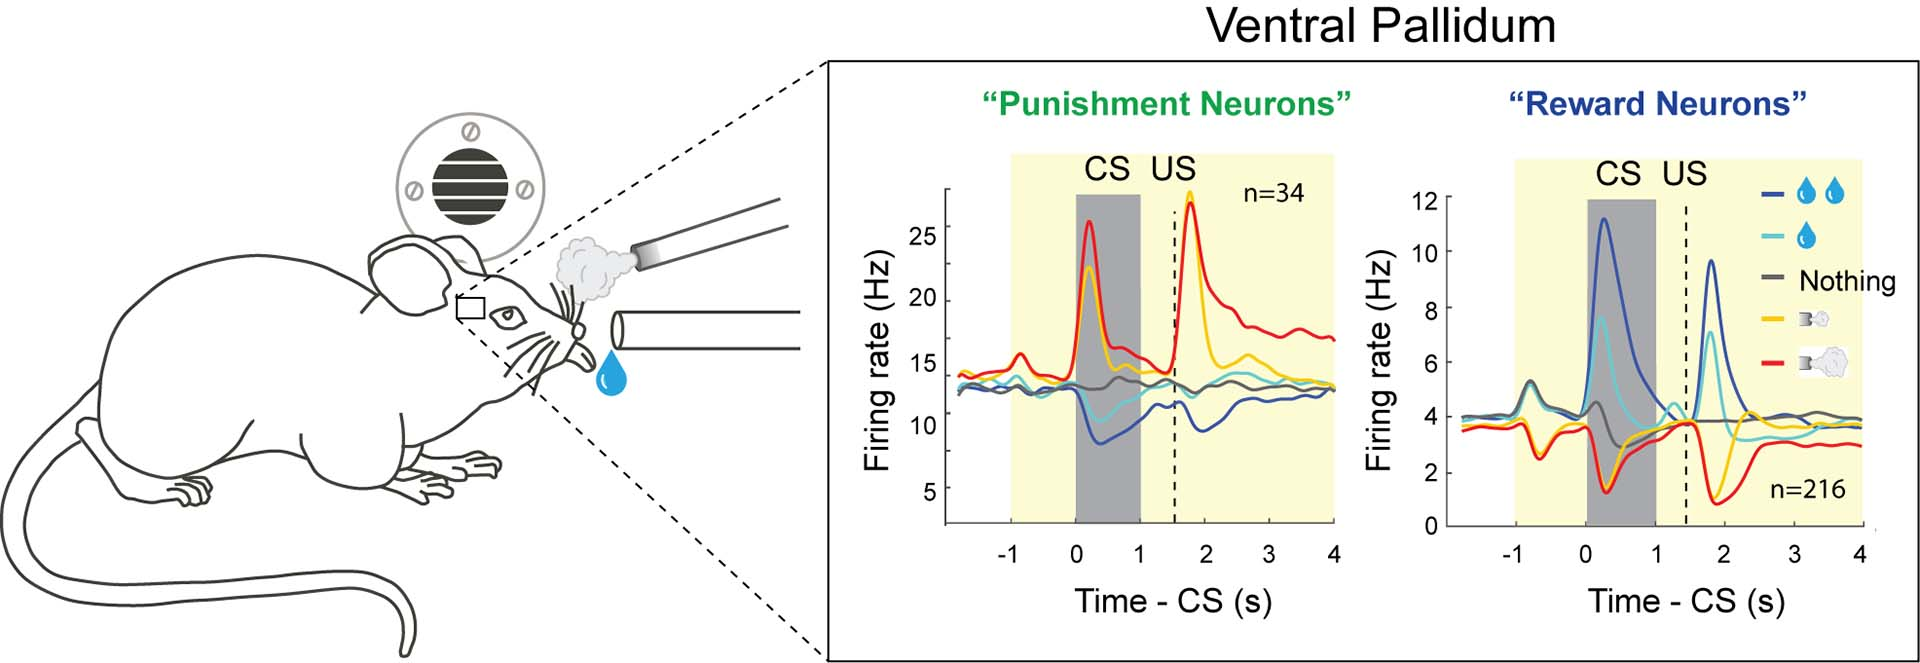 diagram of monitored punishment and reward neural activity in the ventral pallidum